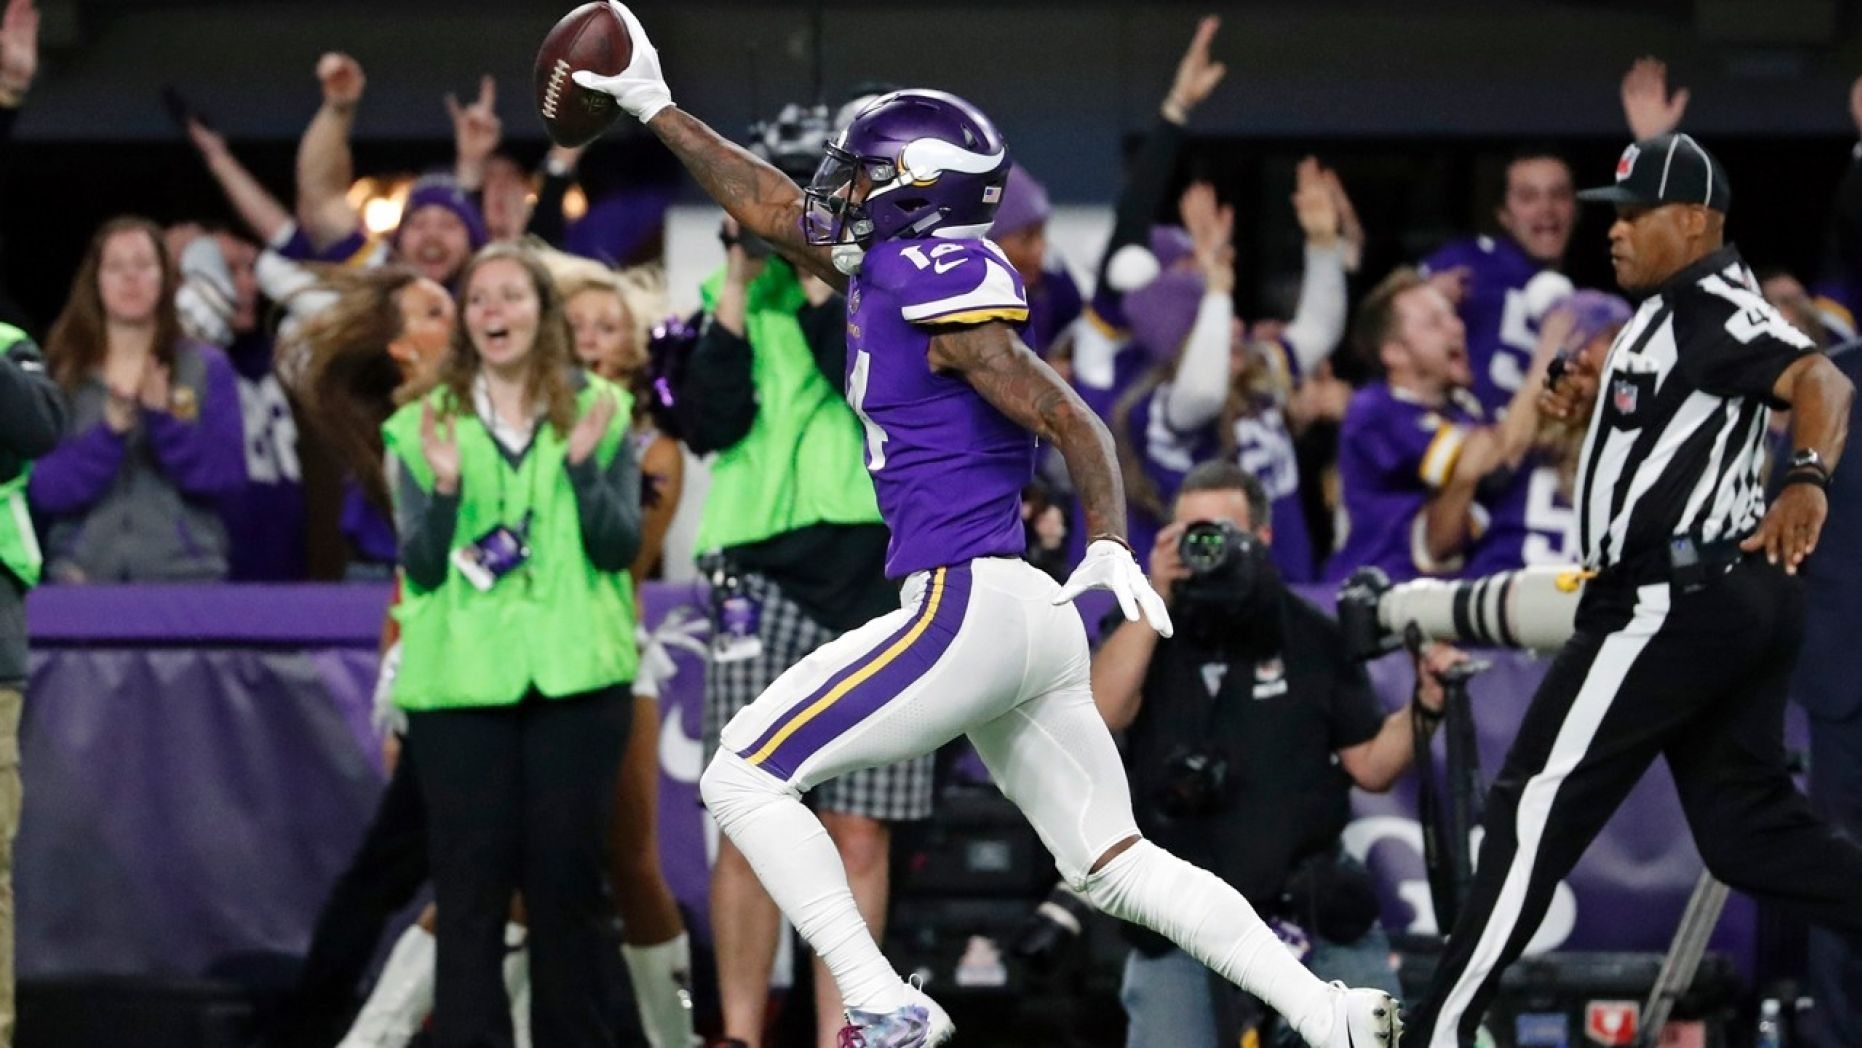 Minnesota Vikings shock New Orleans Saints with final-play TD https://t.co/U774gNofoY https://t.co/t53XQPDCCR